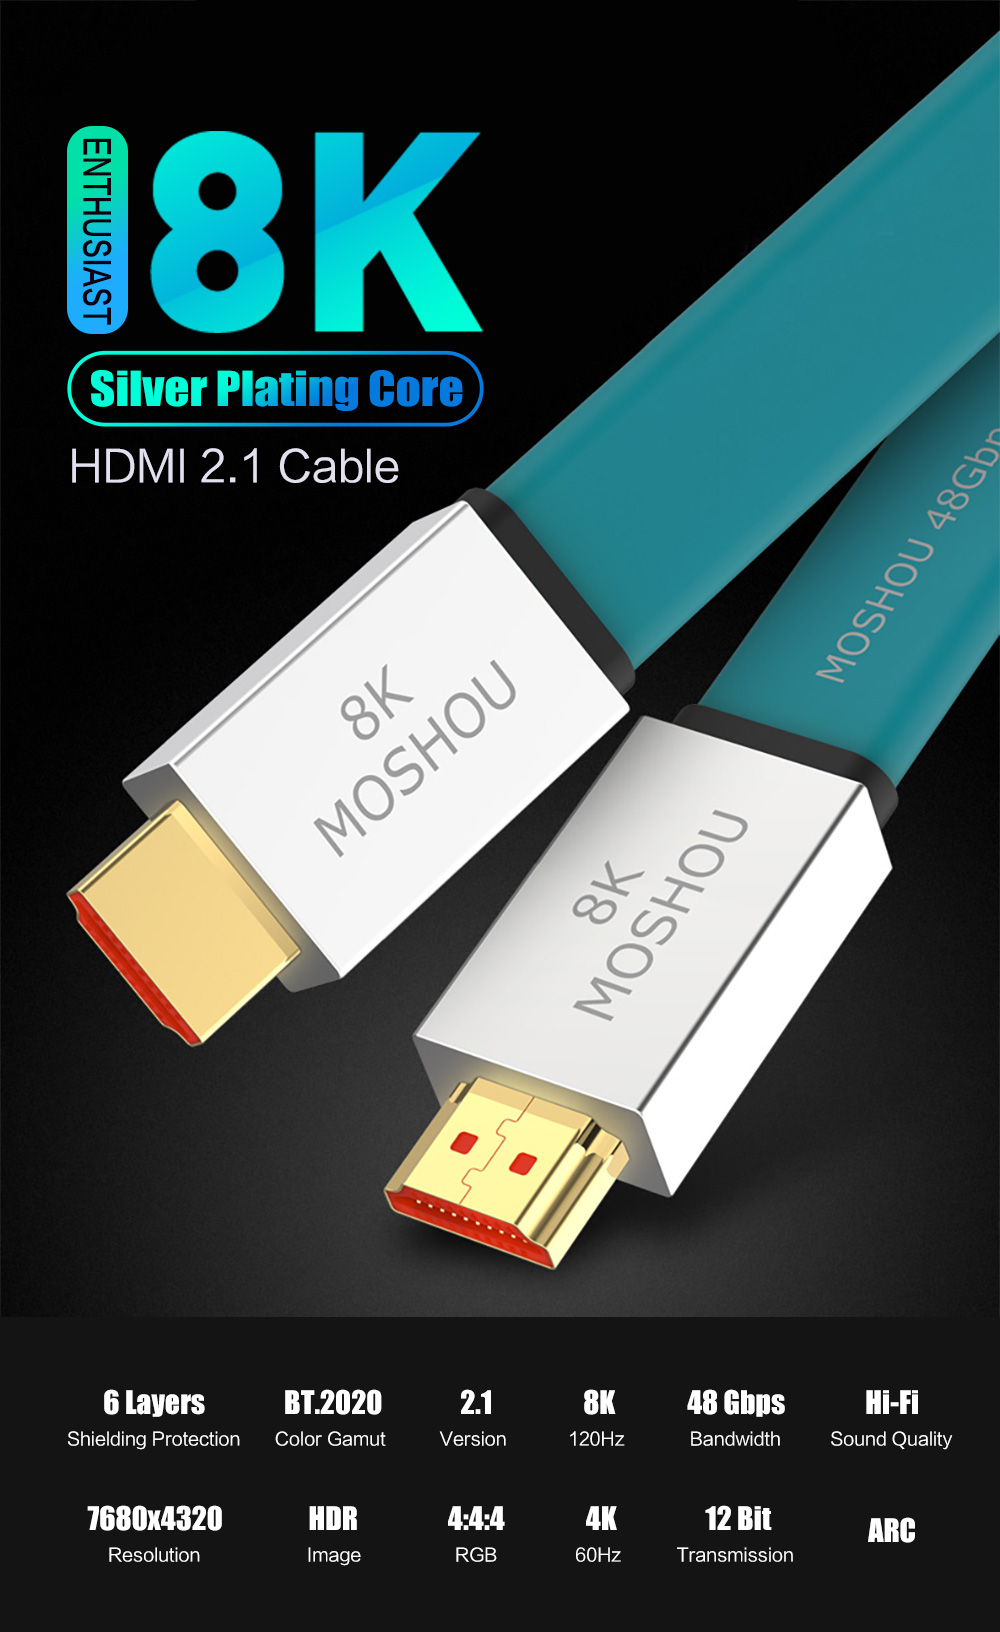 UHD High-Strength HDMI 2.1 Cable Ultra-HD 8K HDMI 2.1 Cable 48Gbs HDR 4:4:4